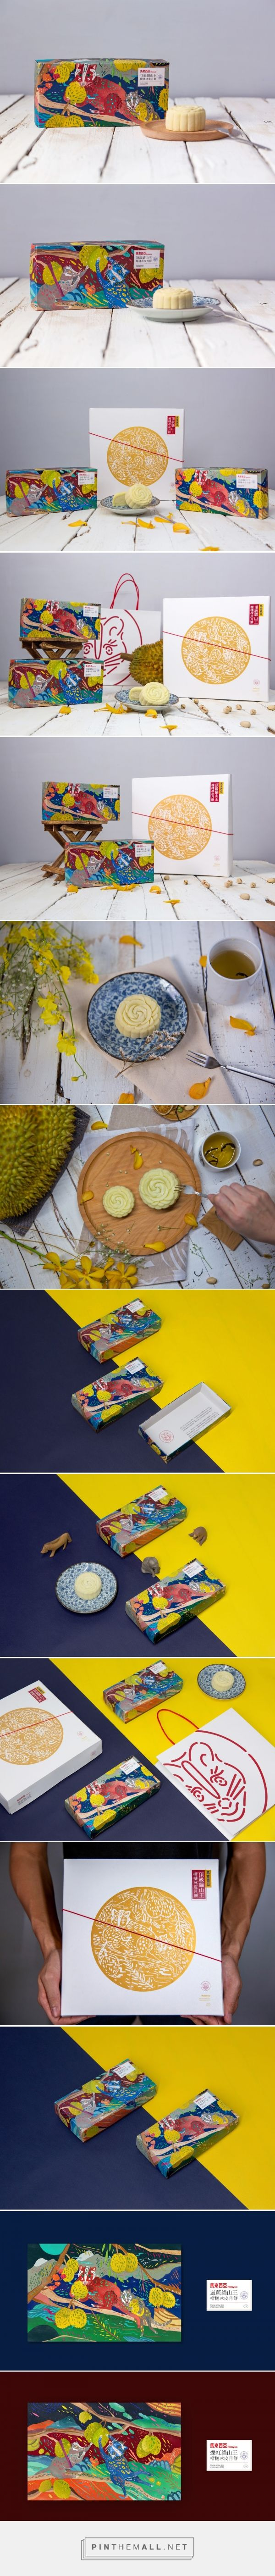 Musang Durian Moon Cake packaging design by Hi Nio (Taiwan) - http://www.packagingoftheworld.com/2016/07/musang-durian-moon-cake.html